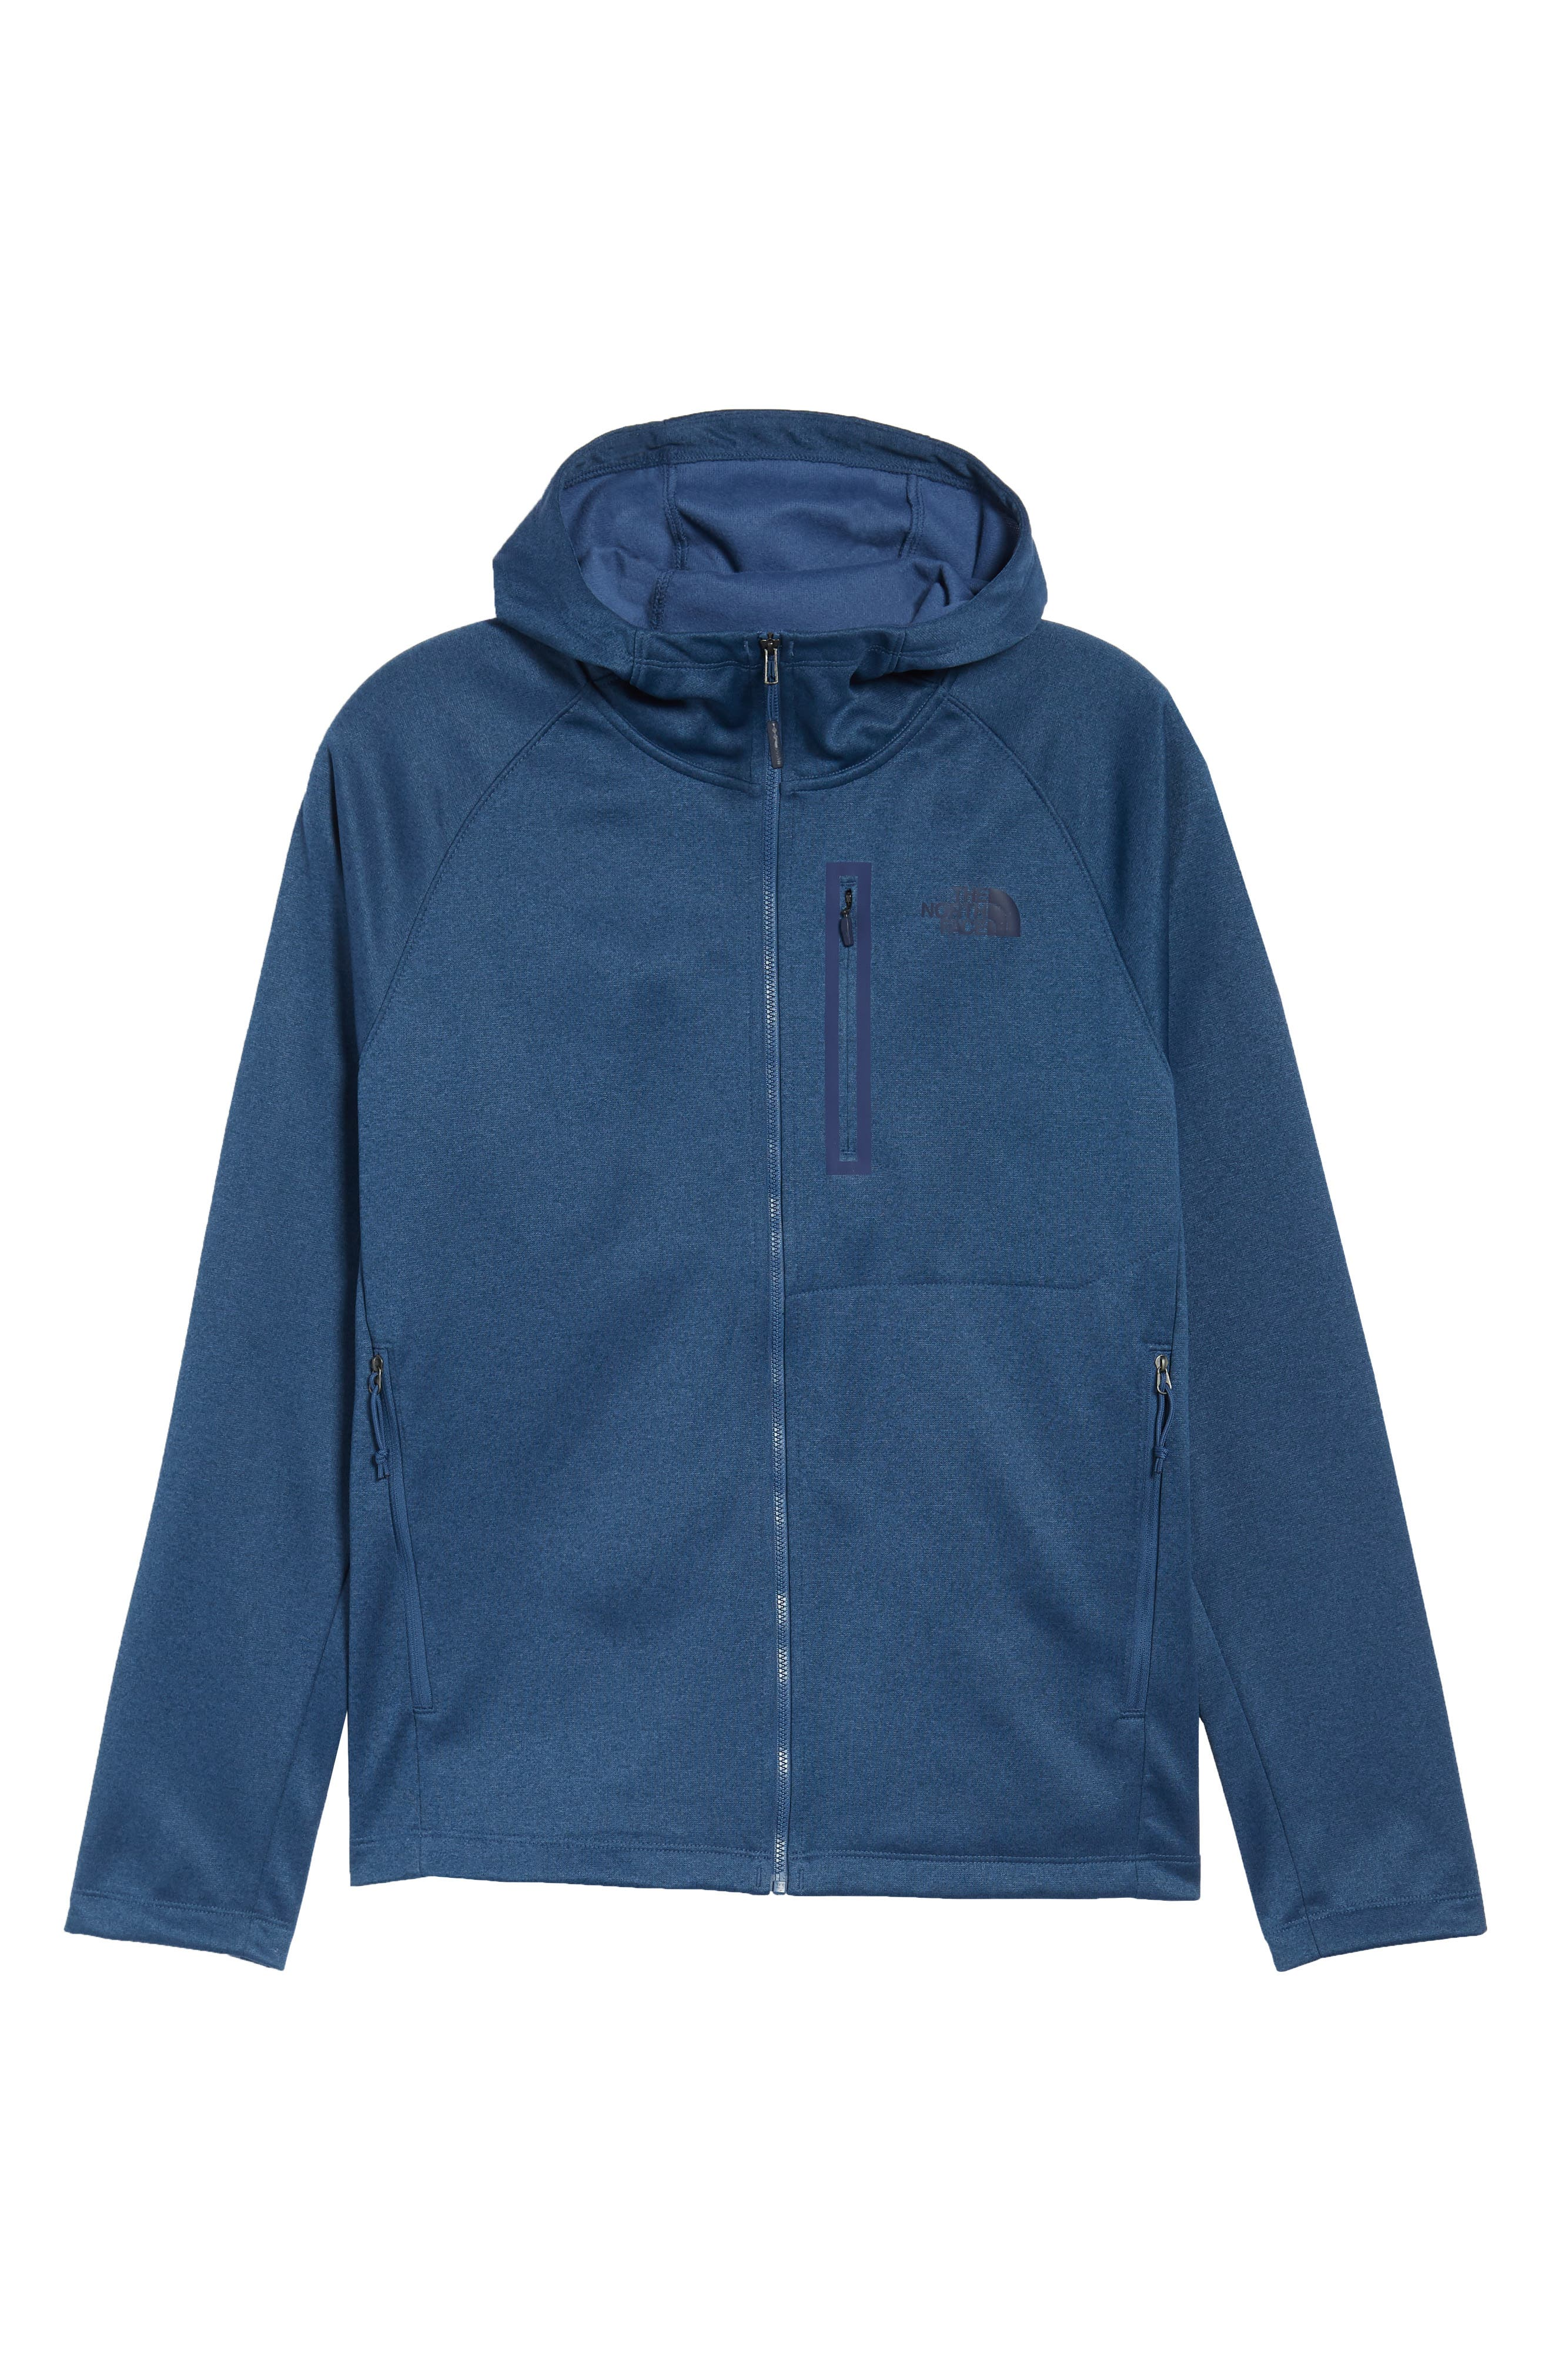 'Canyonlands' Full Zip Hoodie,                             Alternate thumbnail 6, color,                             Tnf Shady Blue Heather